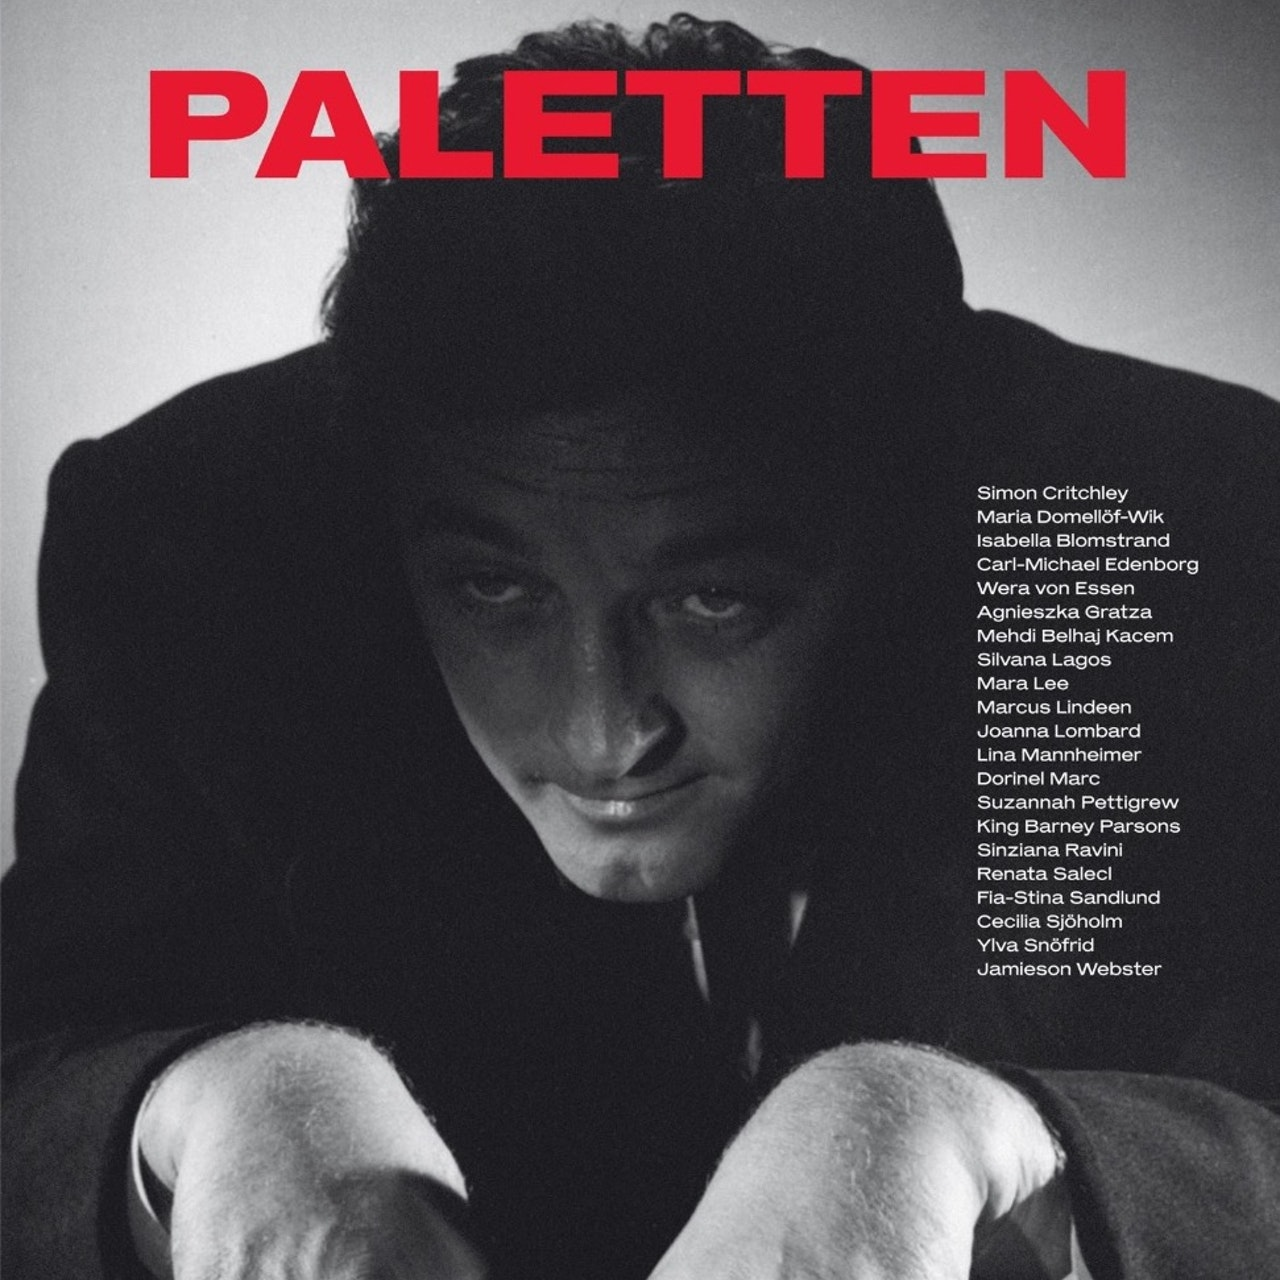 Paletten Magazine Article with Silvana Lagos